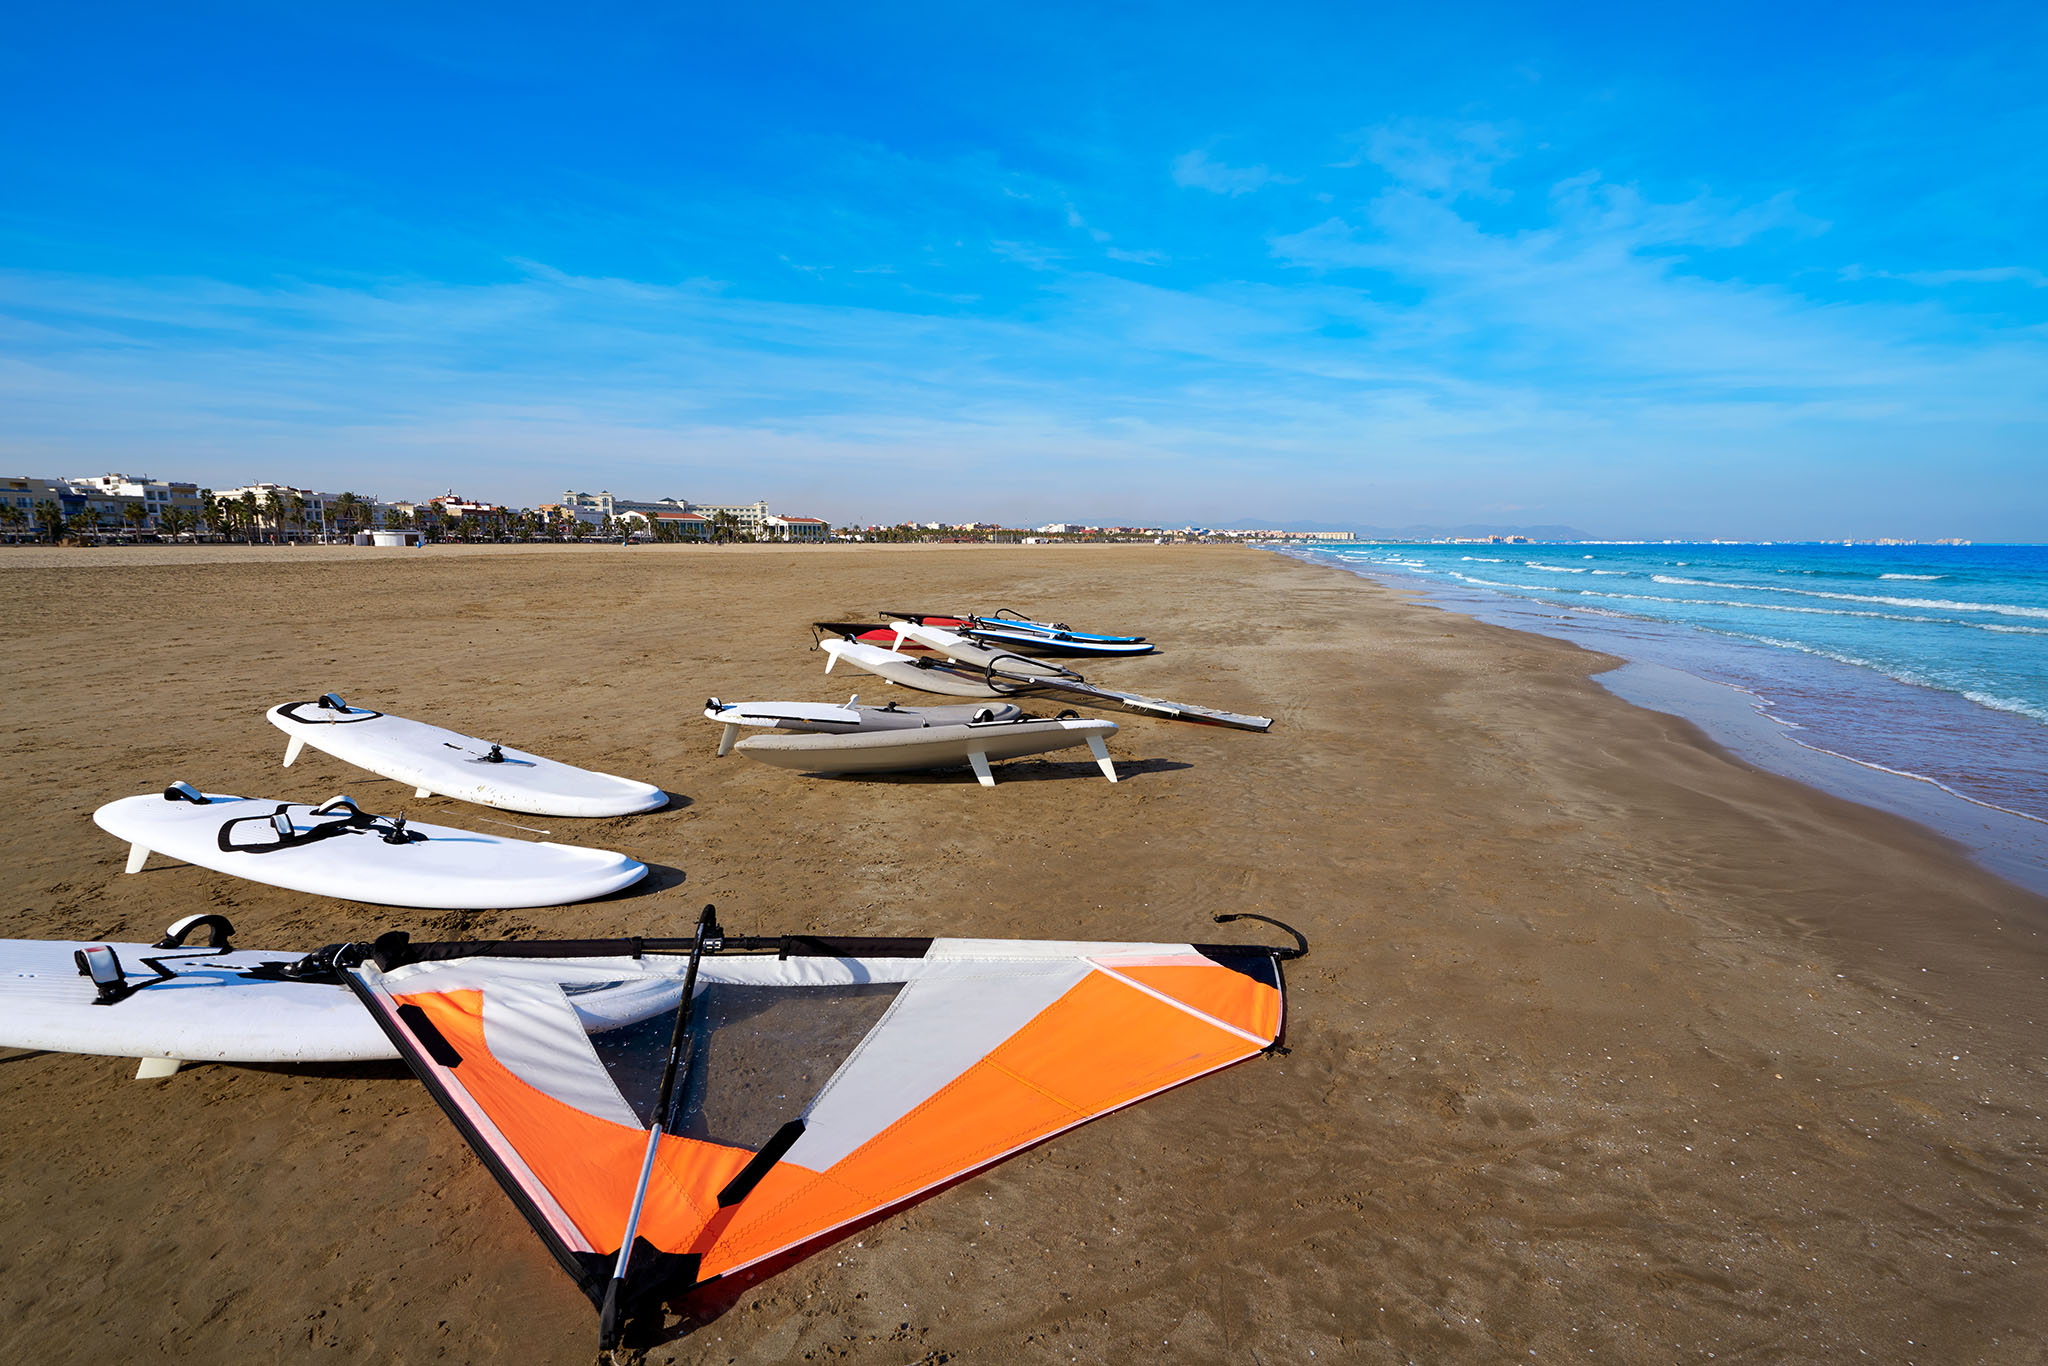 Tablas y velas de windsurf en la playa de El Saler